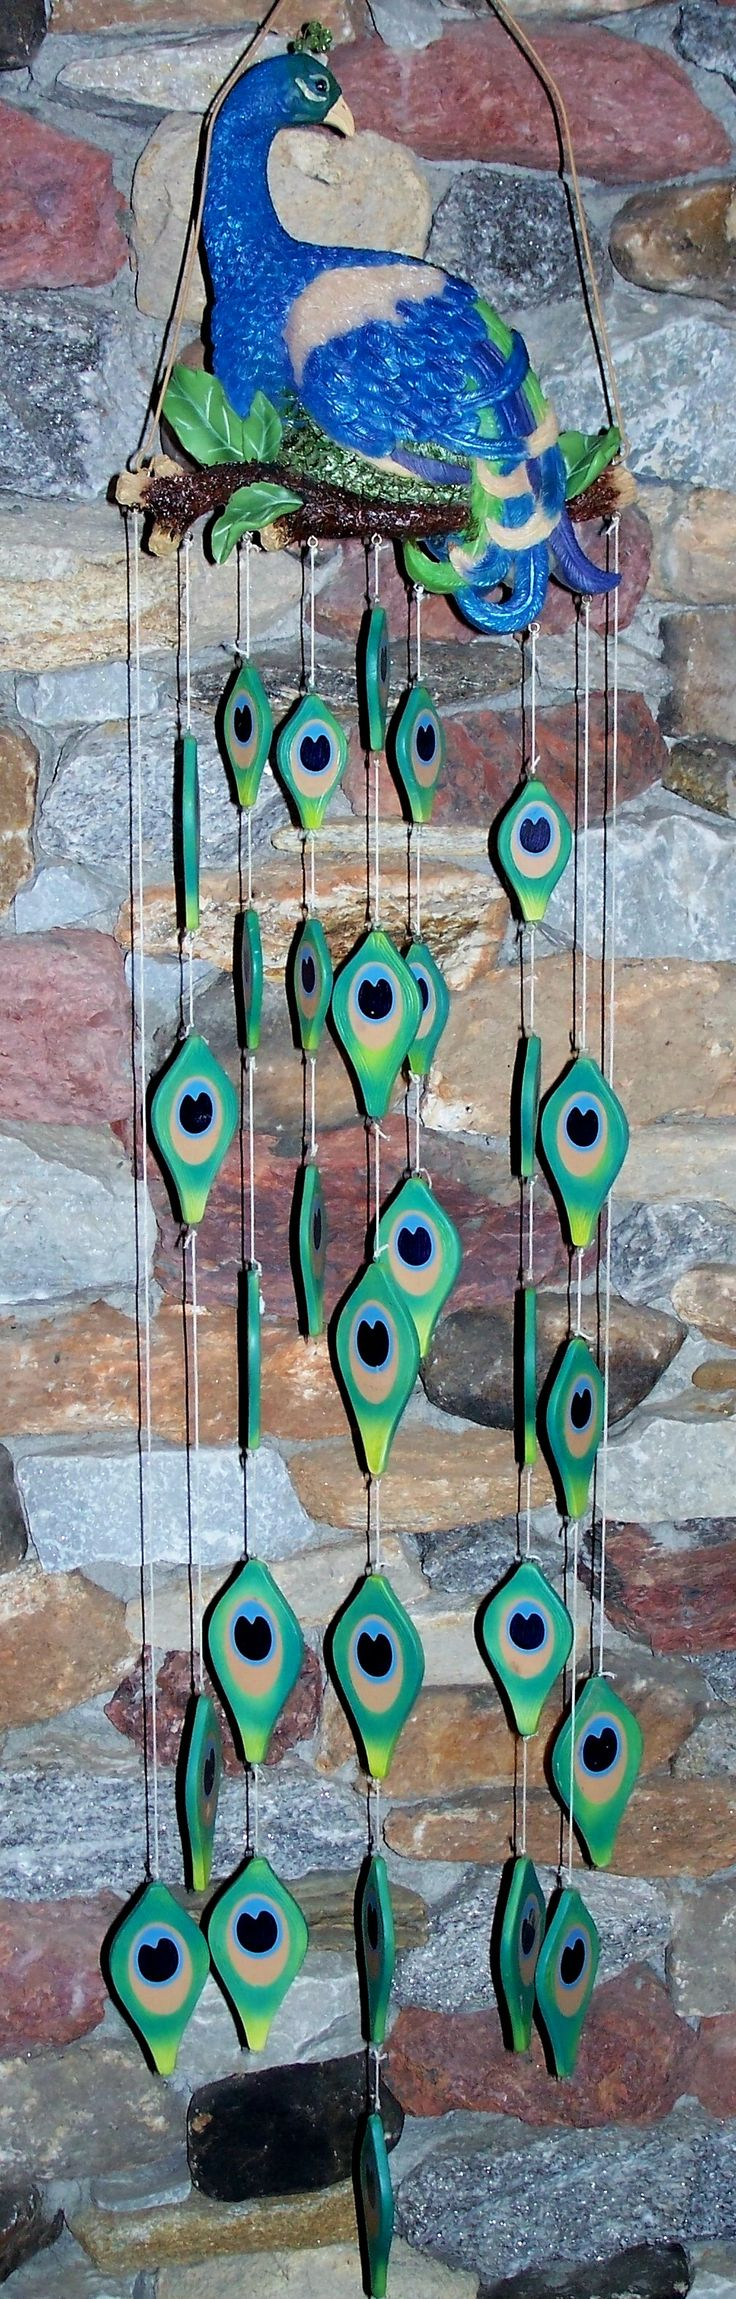 Large Peacock Decorations   WIND CHIME w/ CERAMIC FEATHER CHIMES